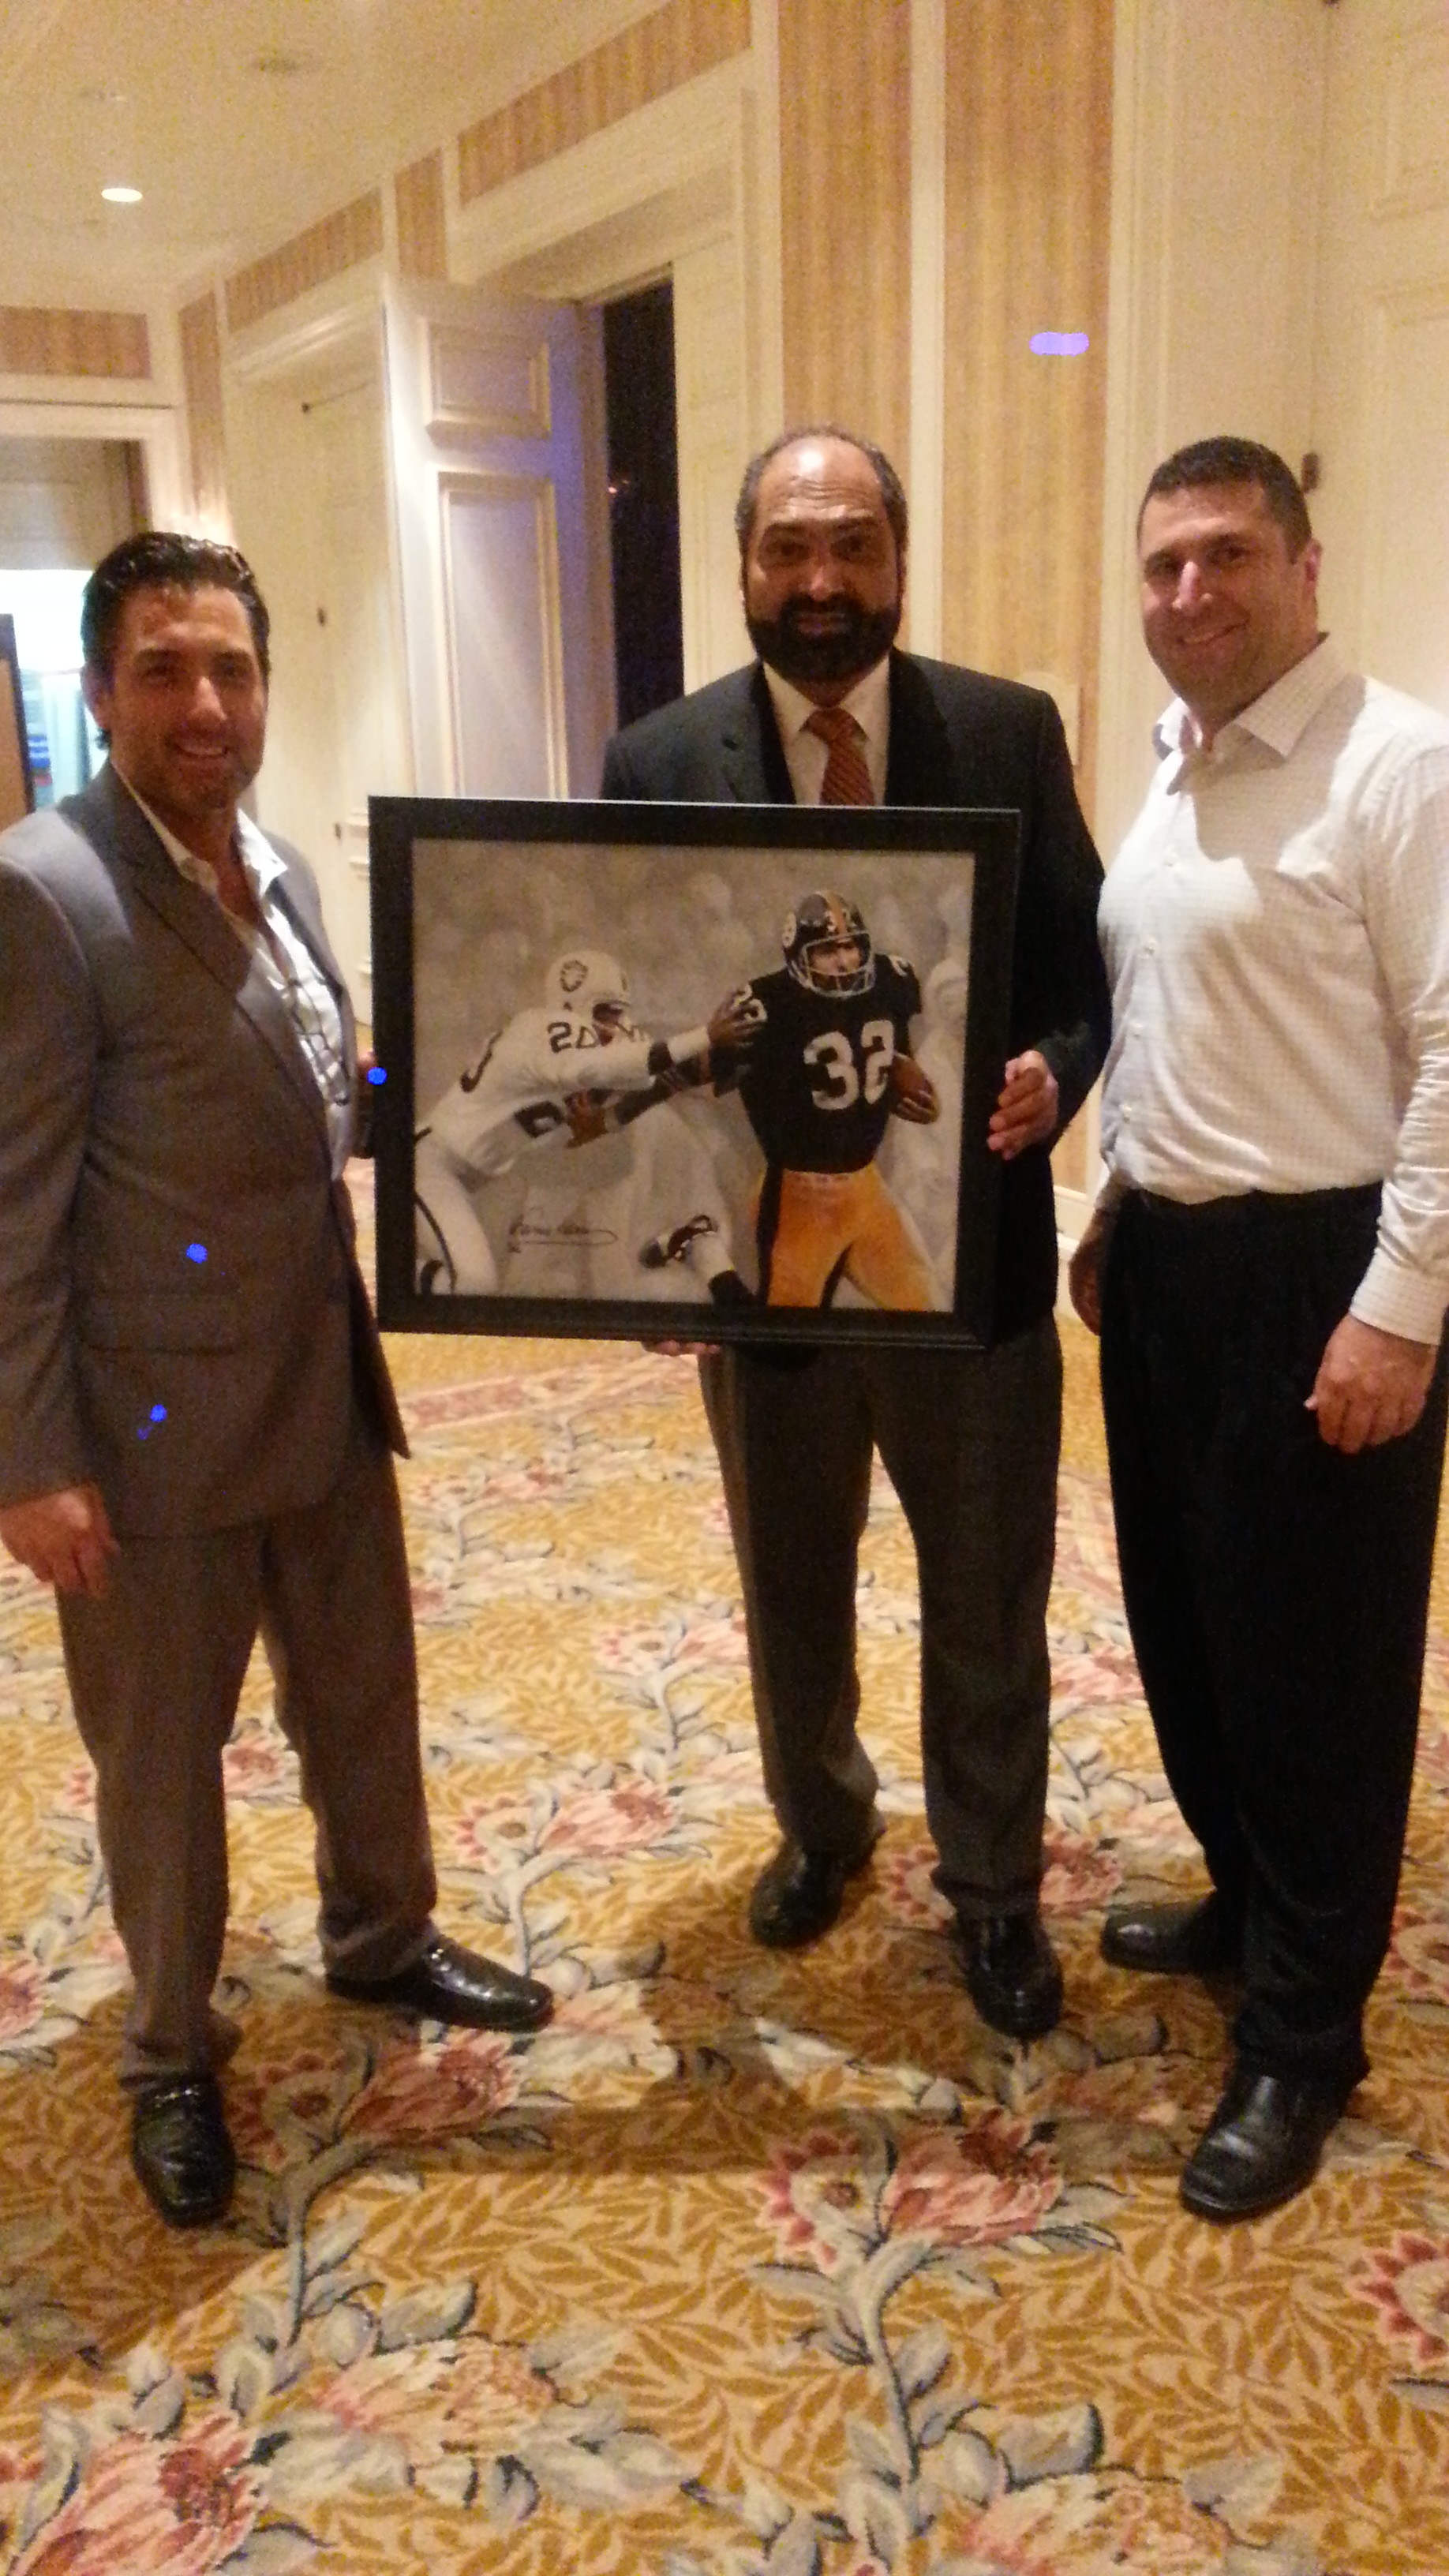 NFL Celebrity Franco Harris (center) ,and (right) Todd Krasovetz